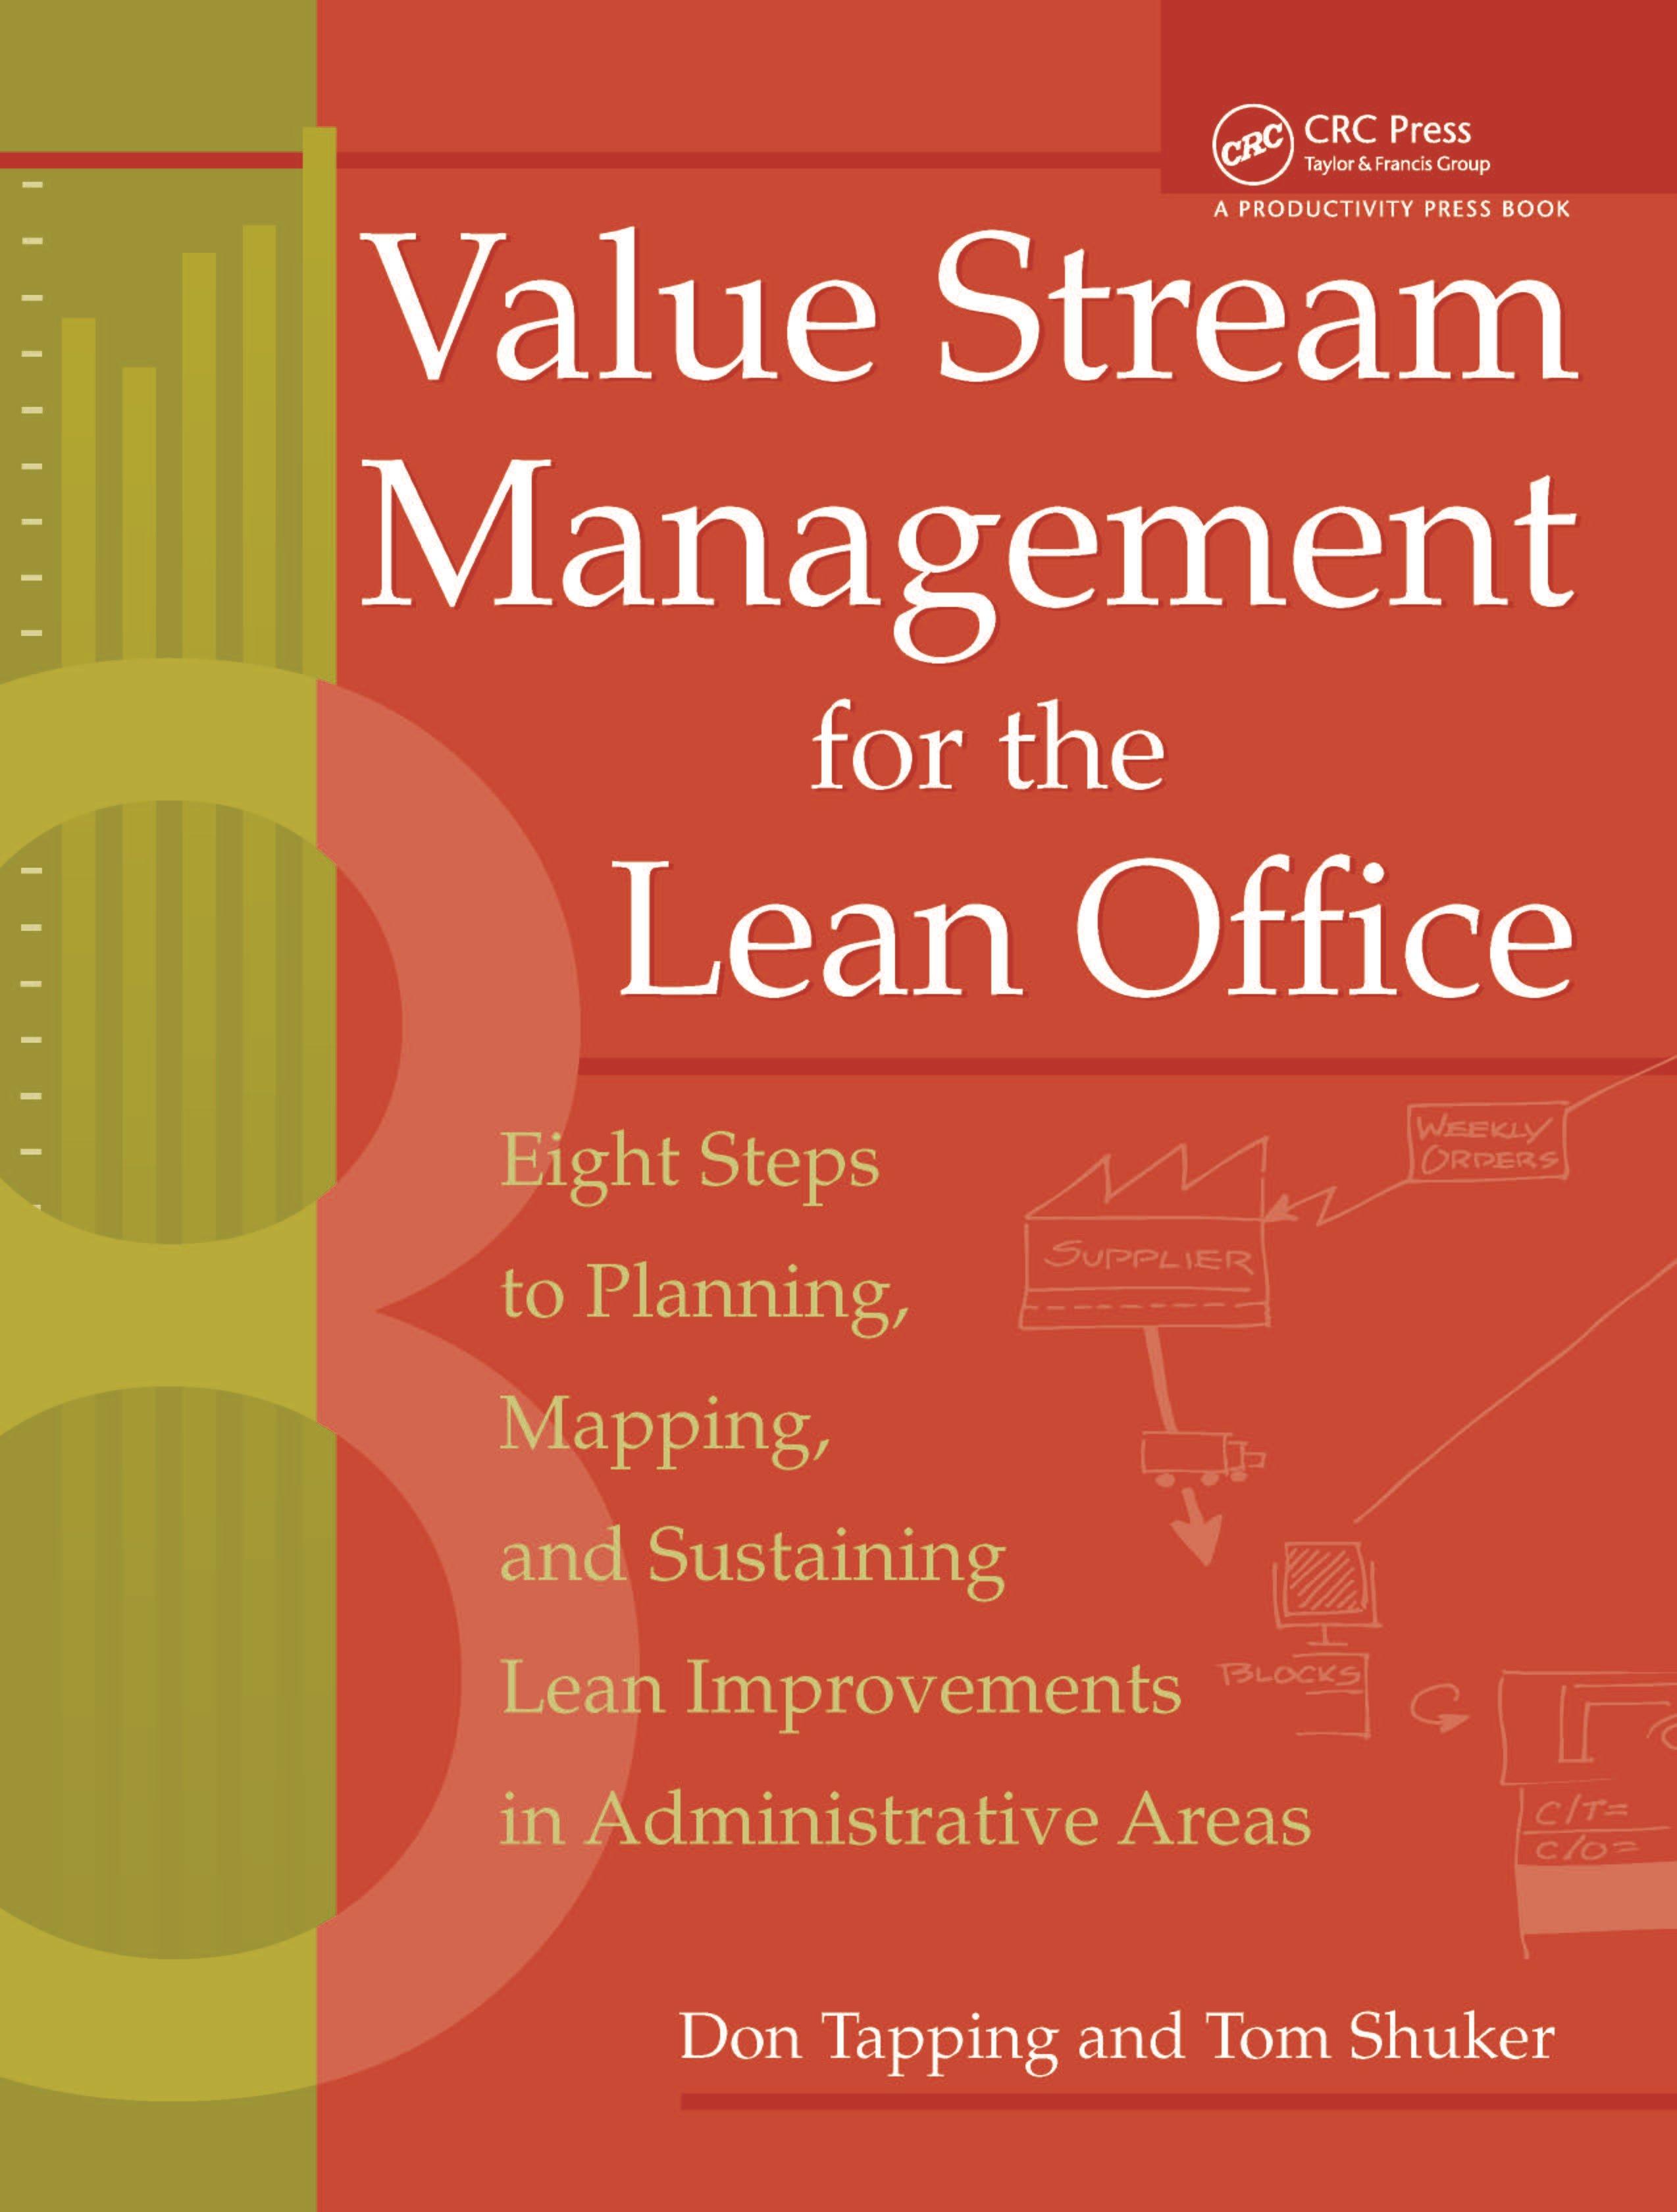 Value Stream Management for the Lean Office